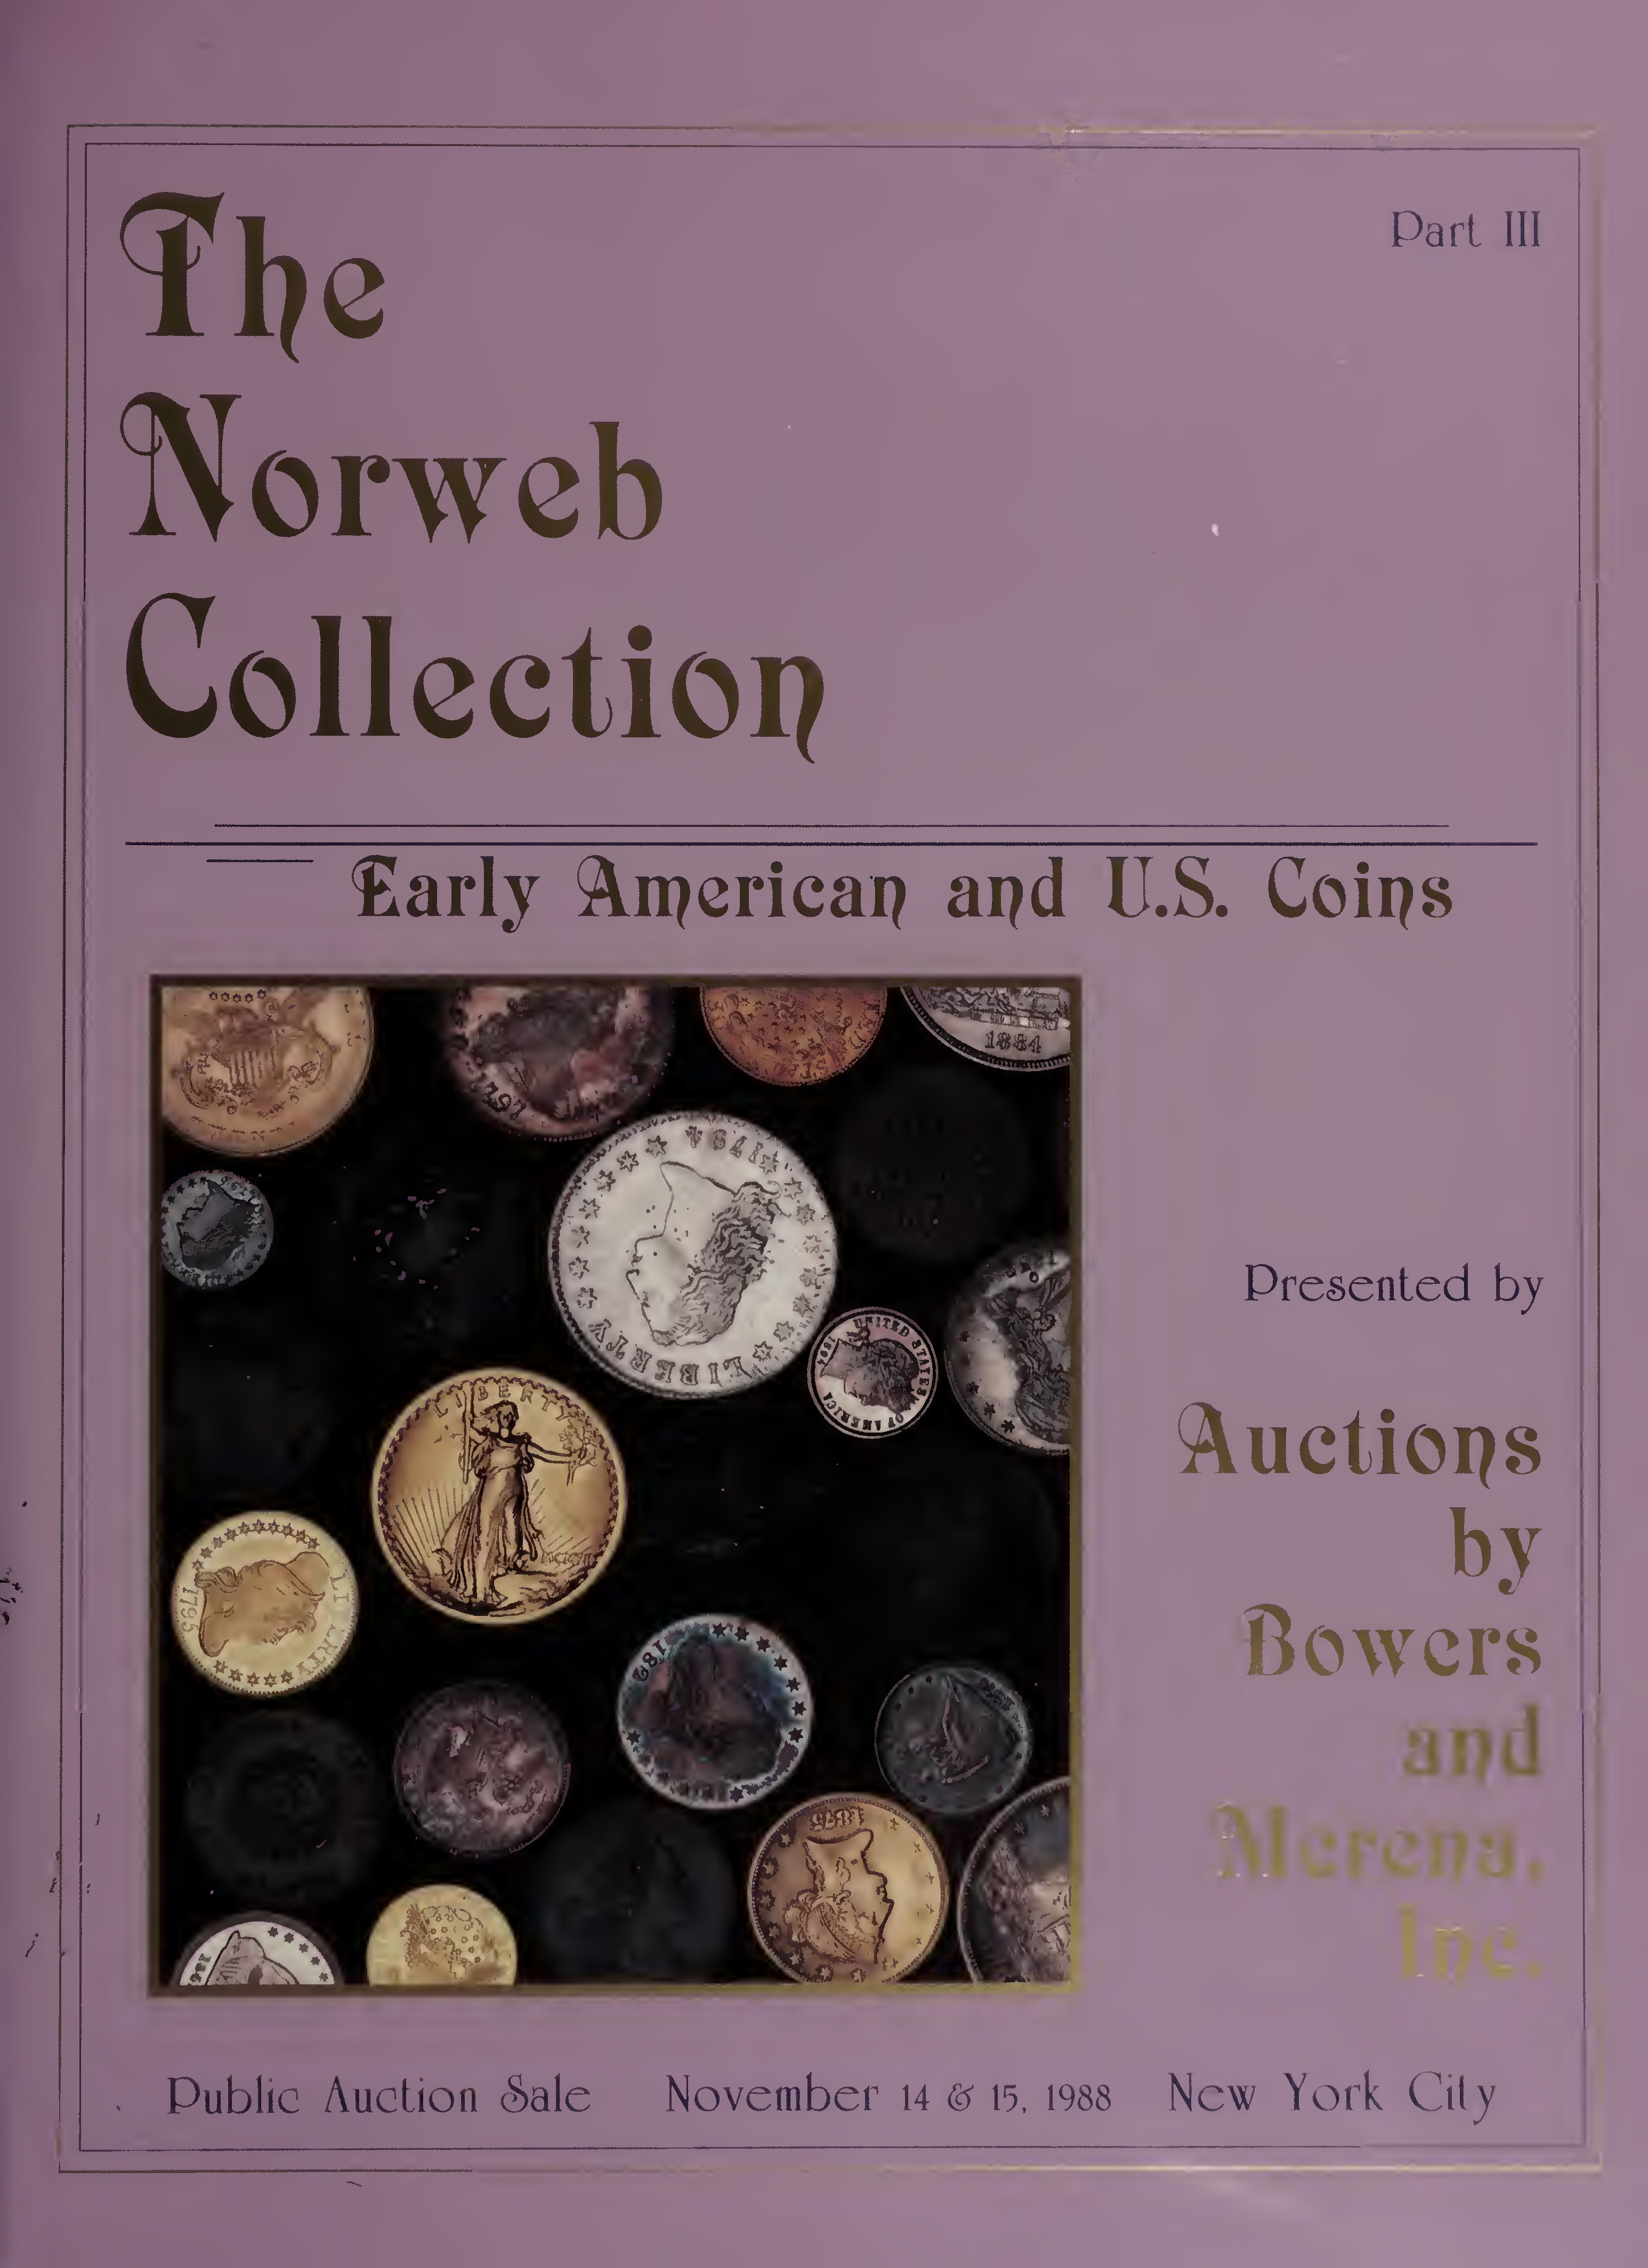 Rare Coins From The Norweb Collection